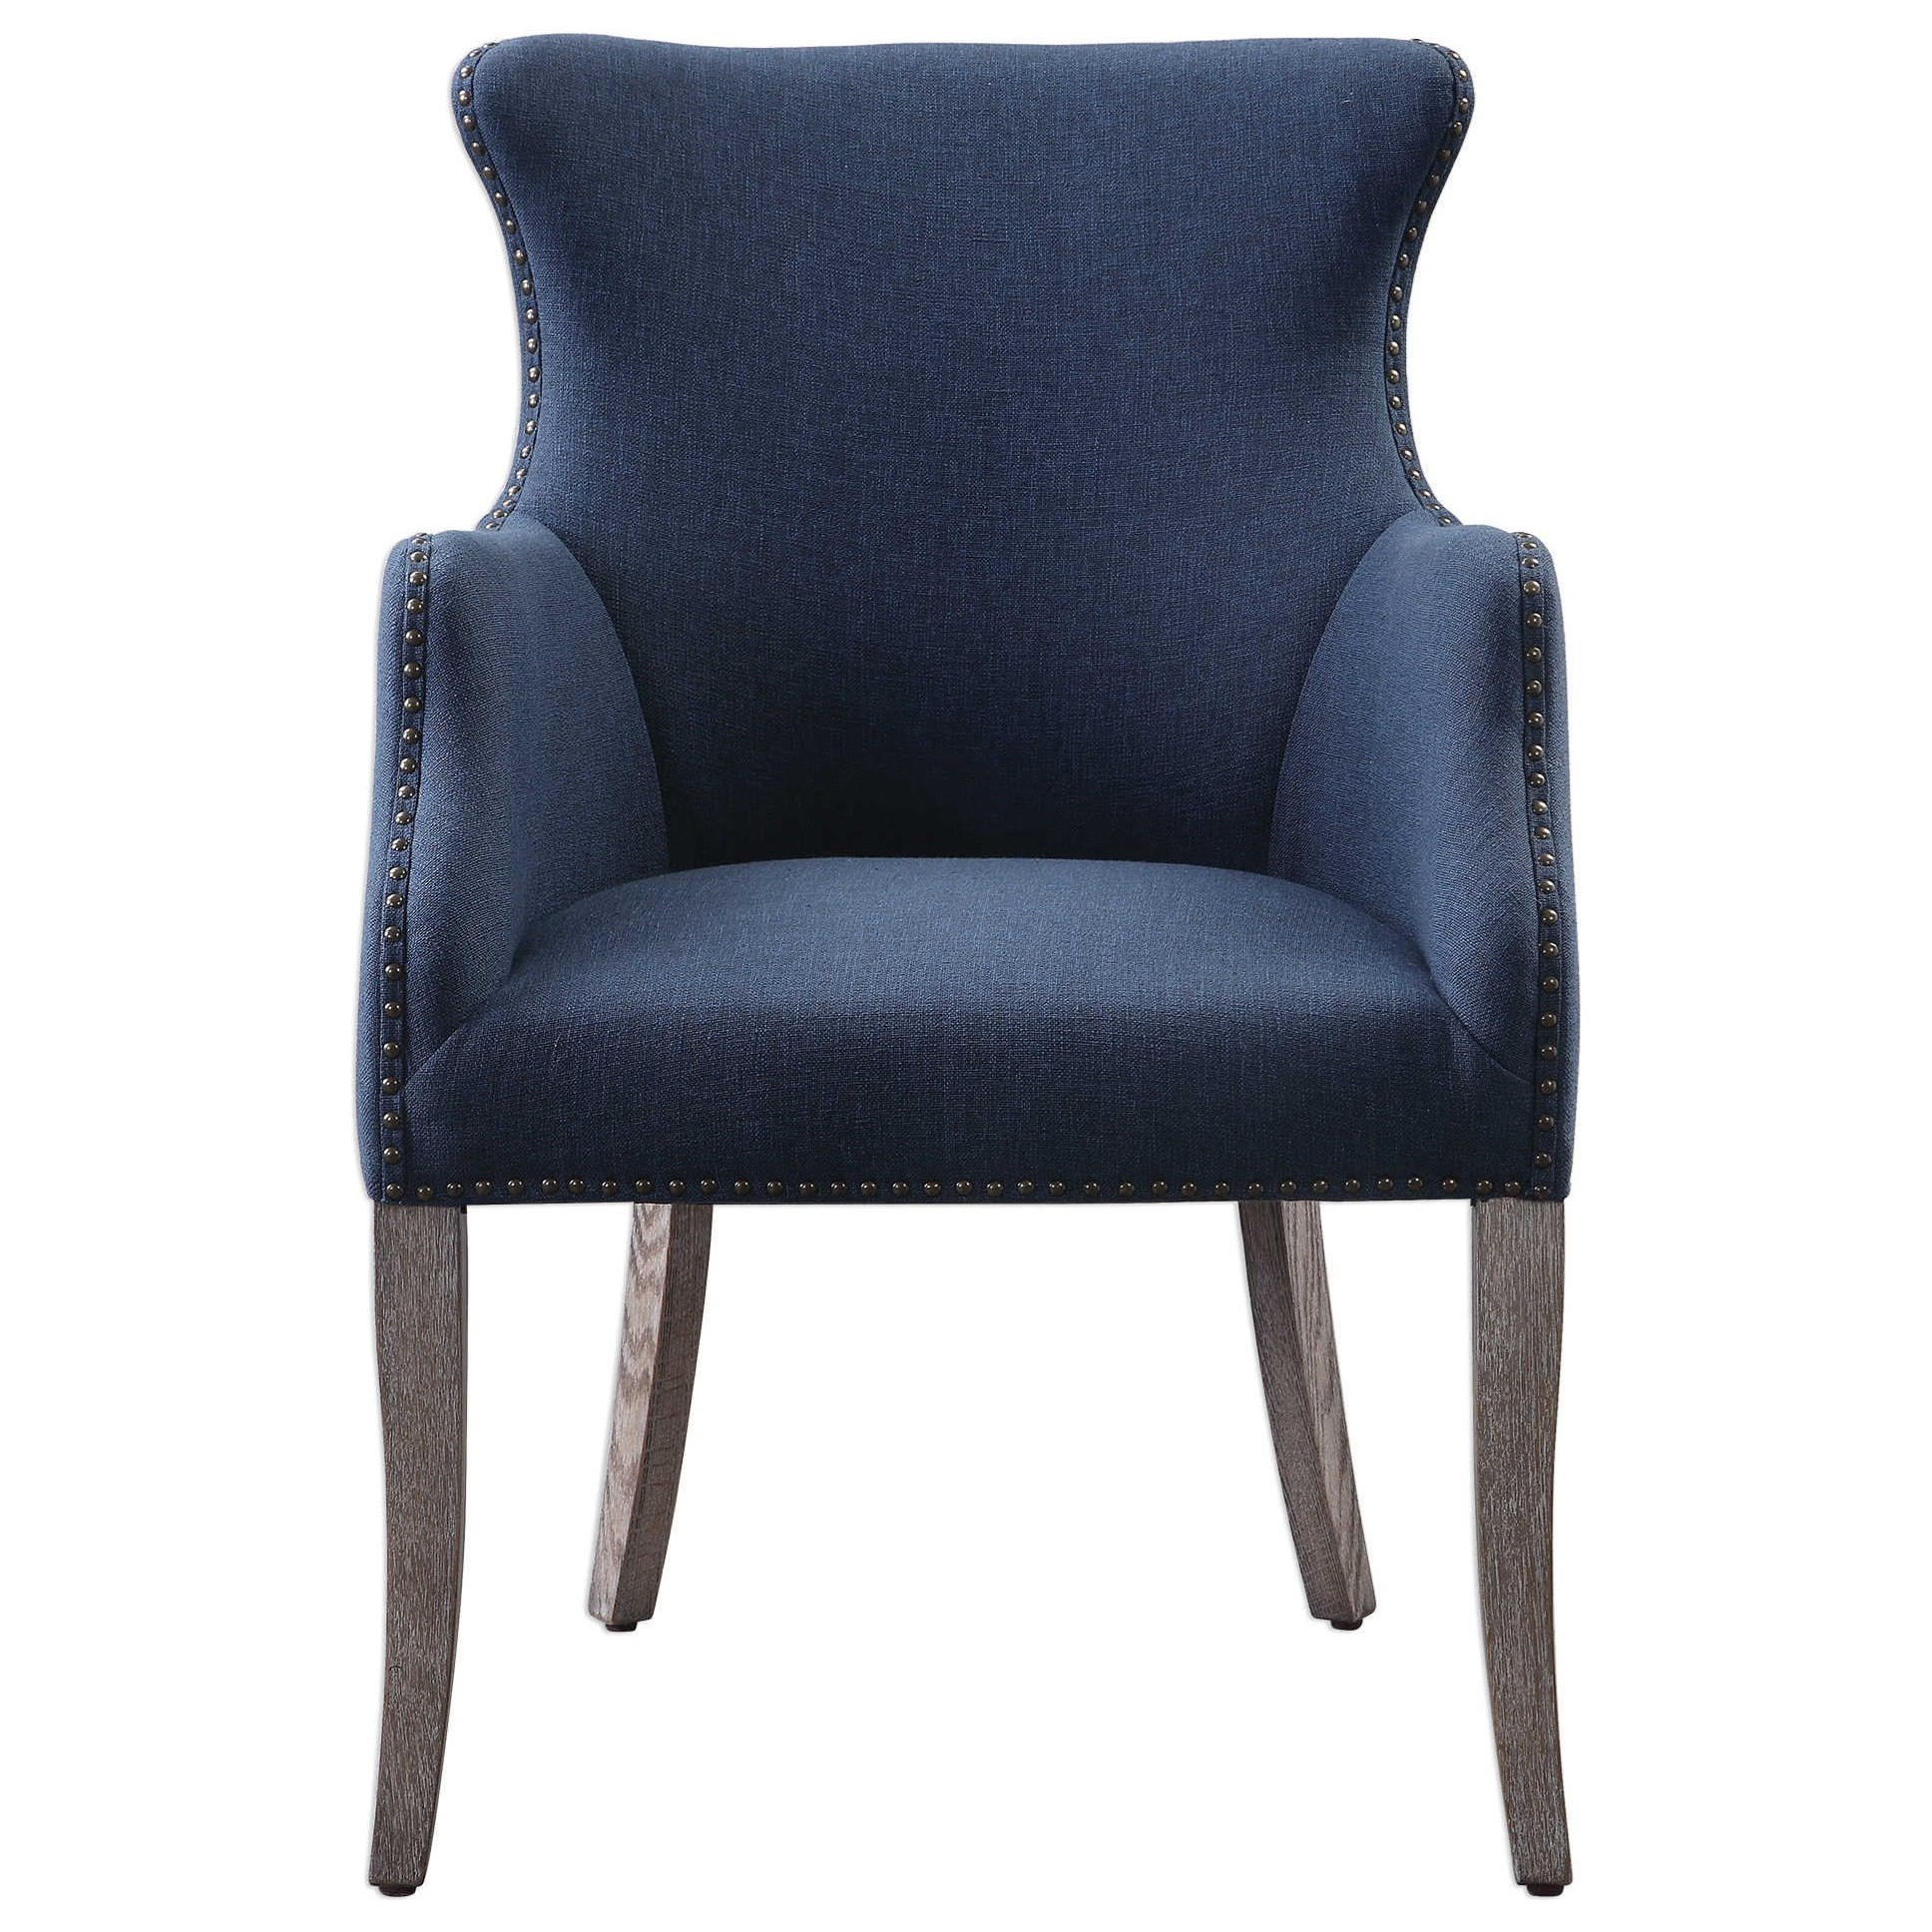 Accent Furniture - Accent Chairs Yareena Blue Wing Chair by Uttermost at Furniture Superstore - Rochester, MN